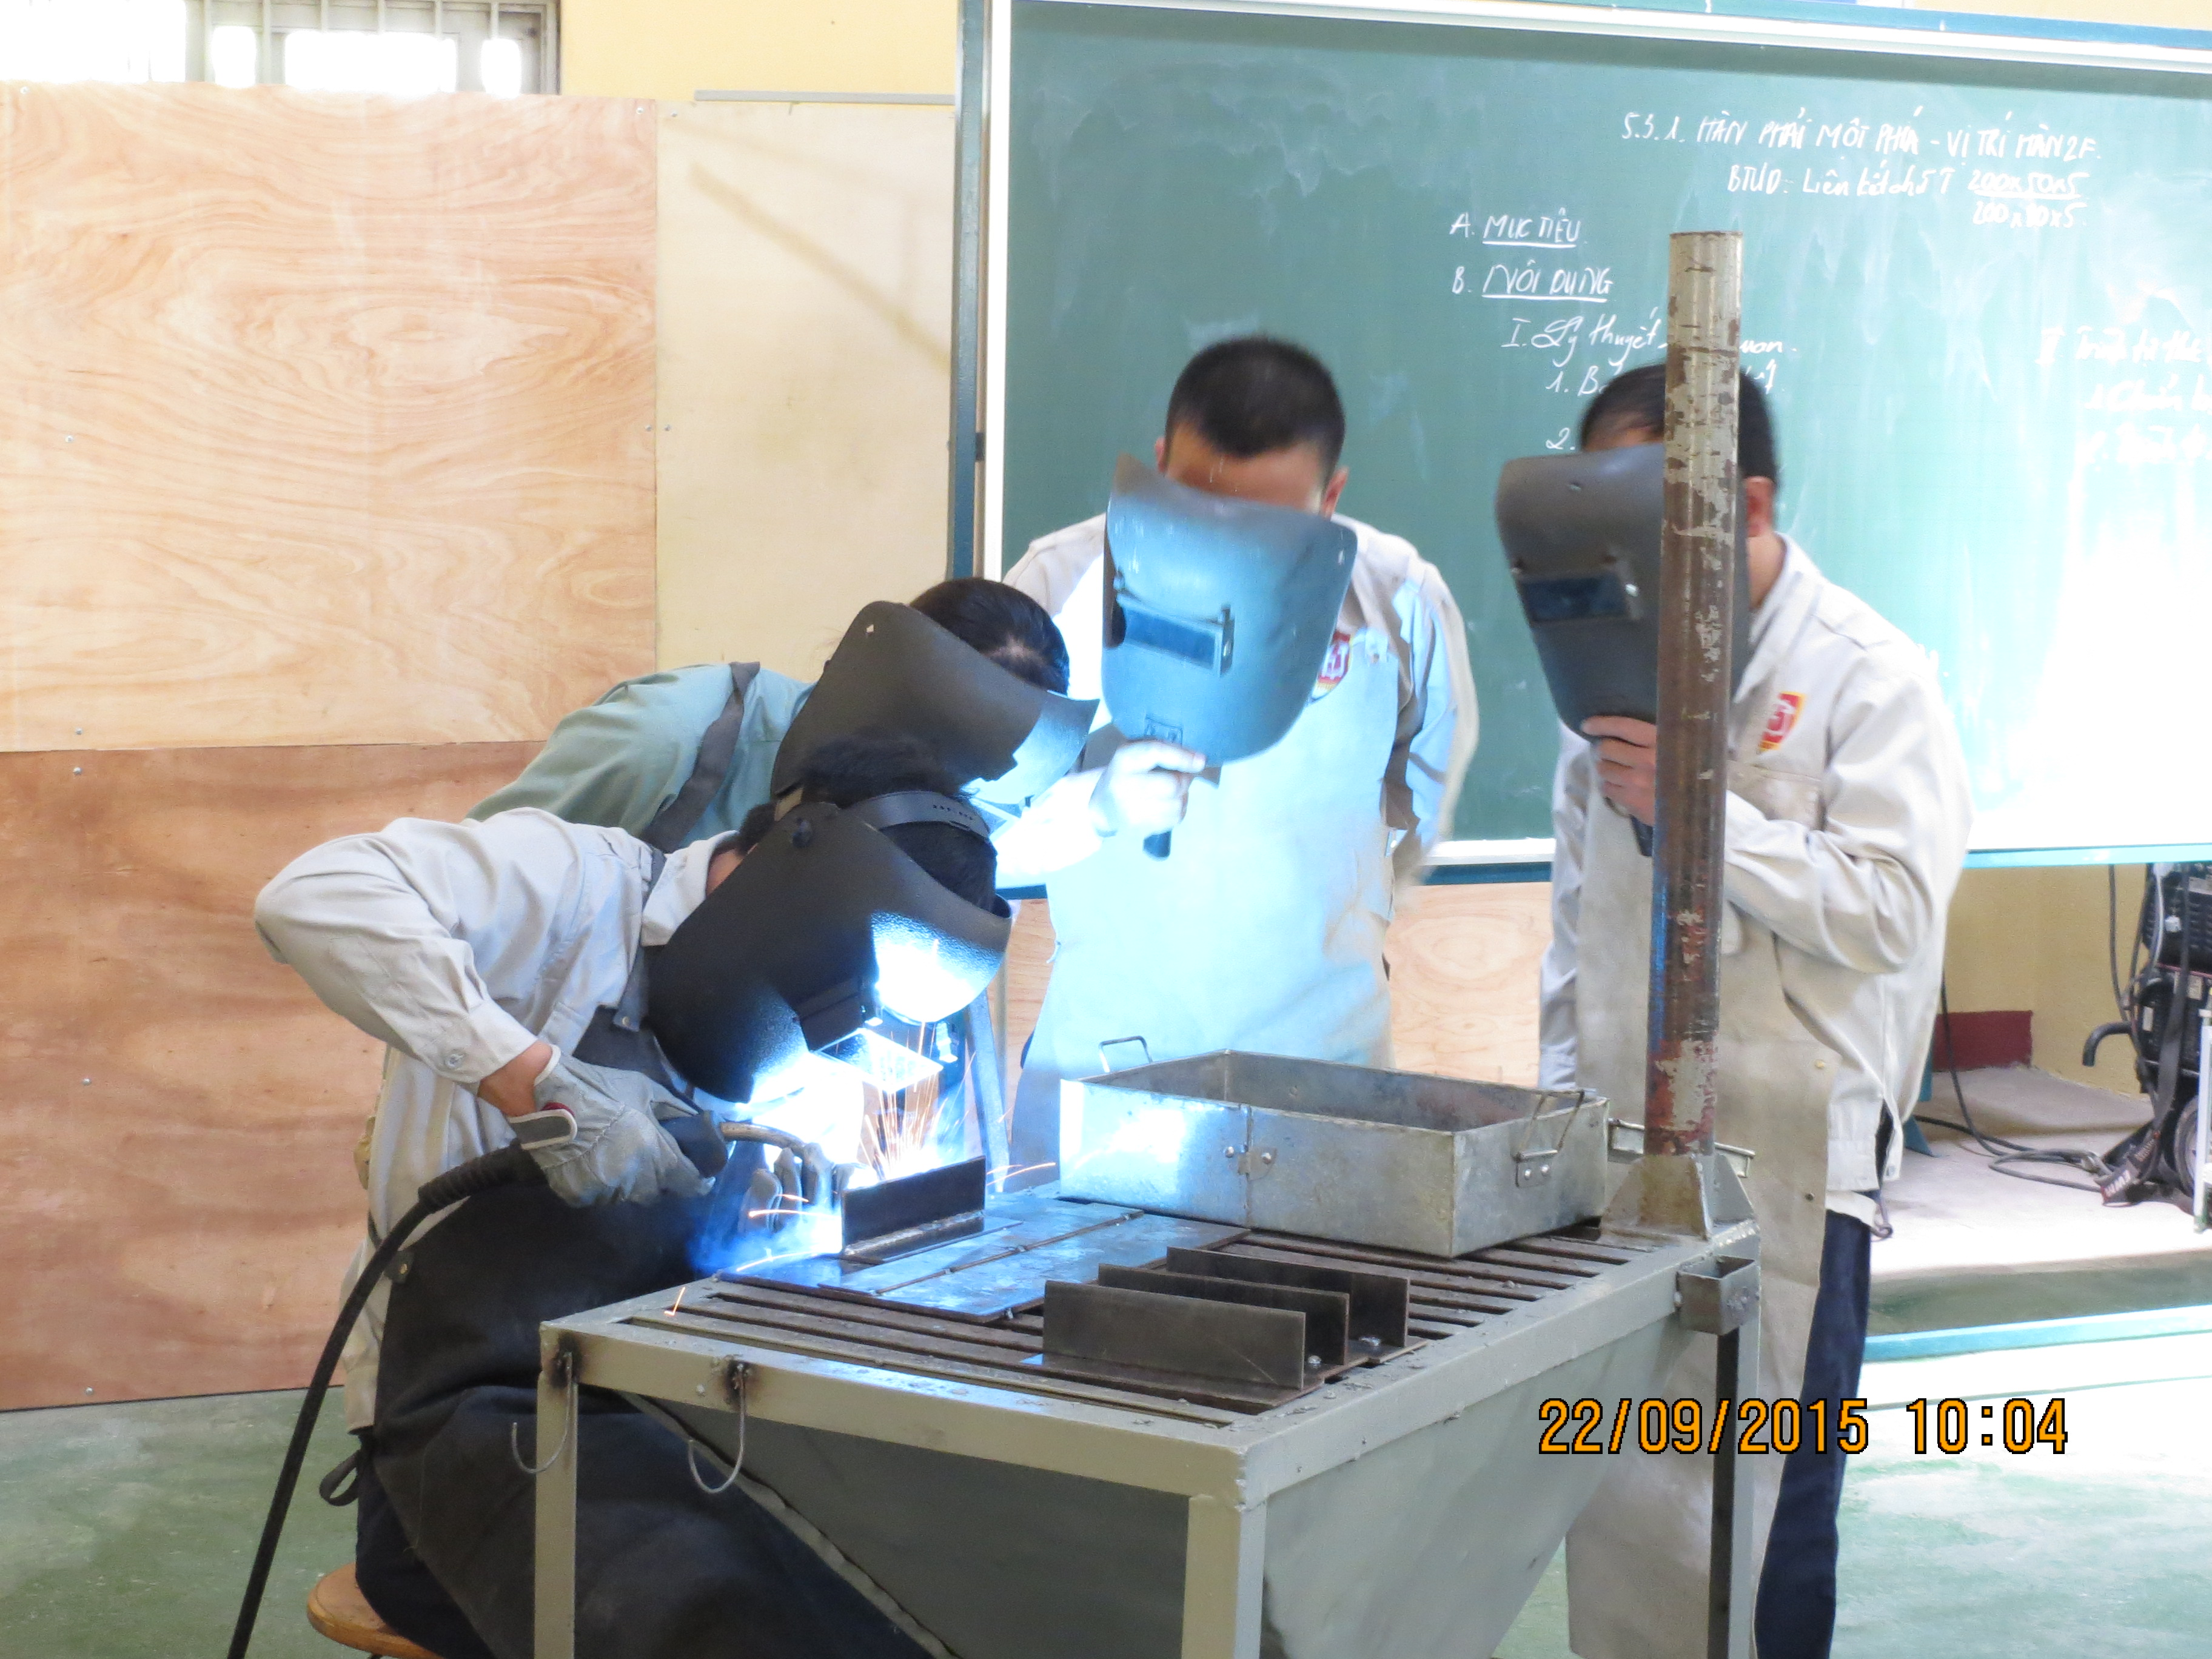 Practice of welding during presentation of lecture